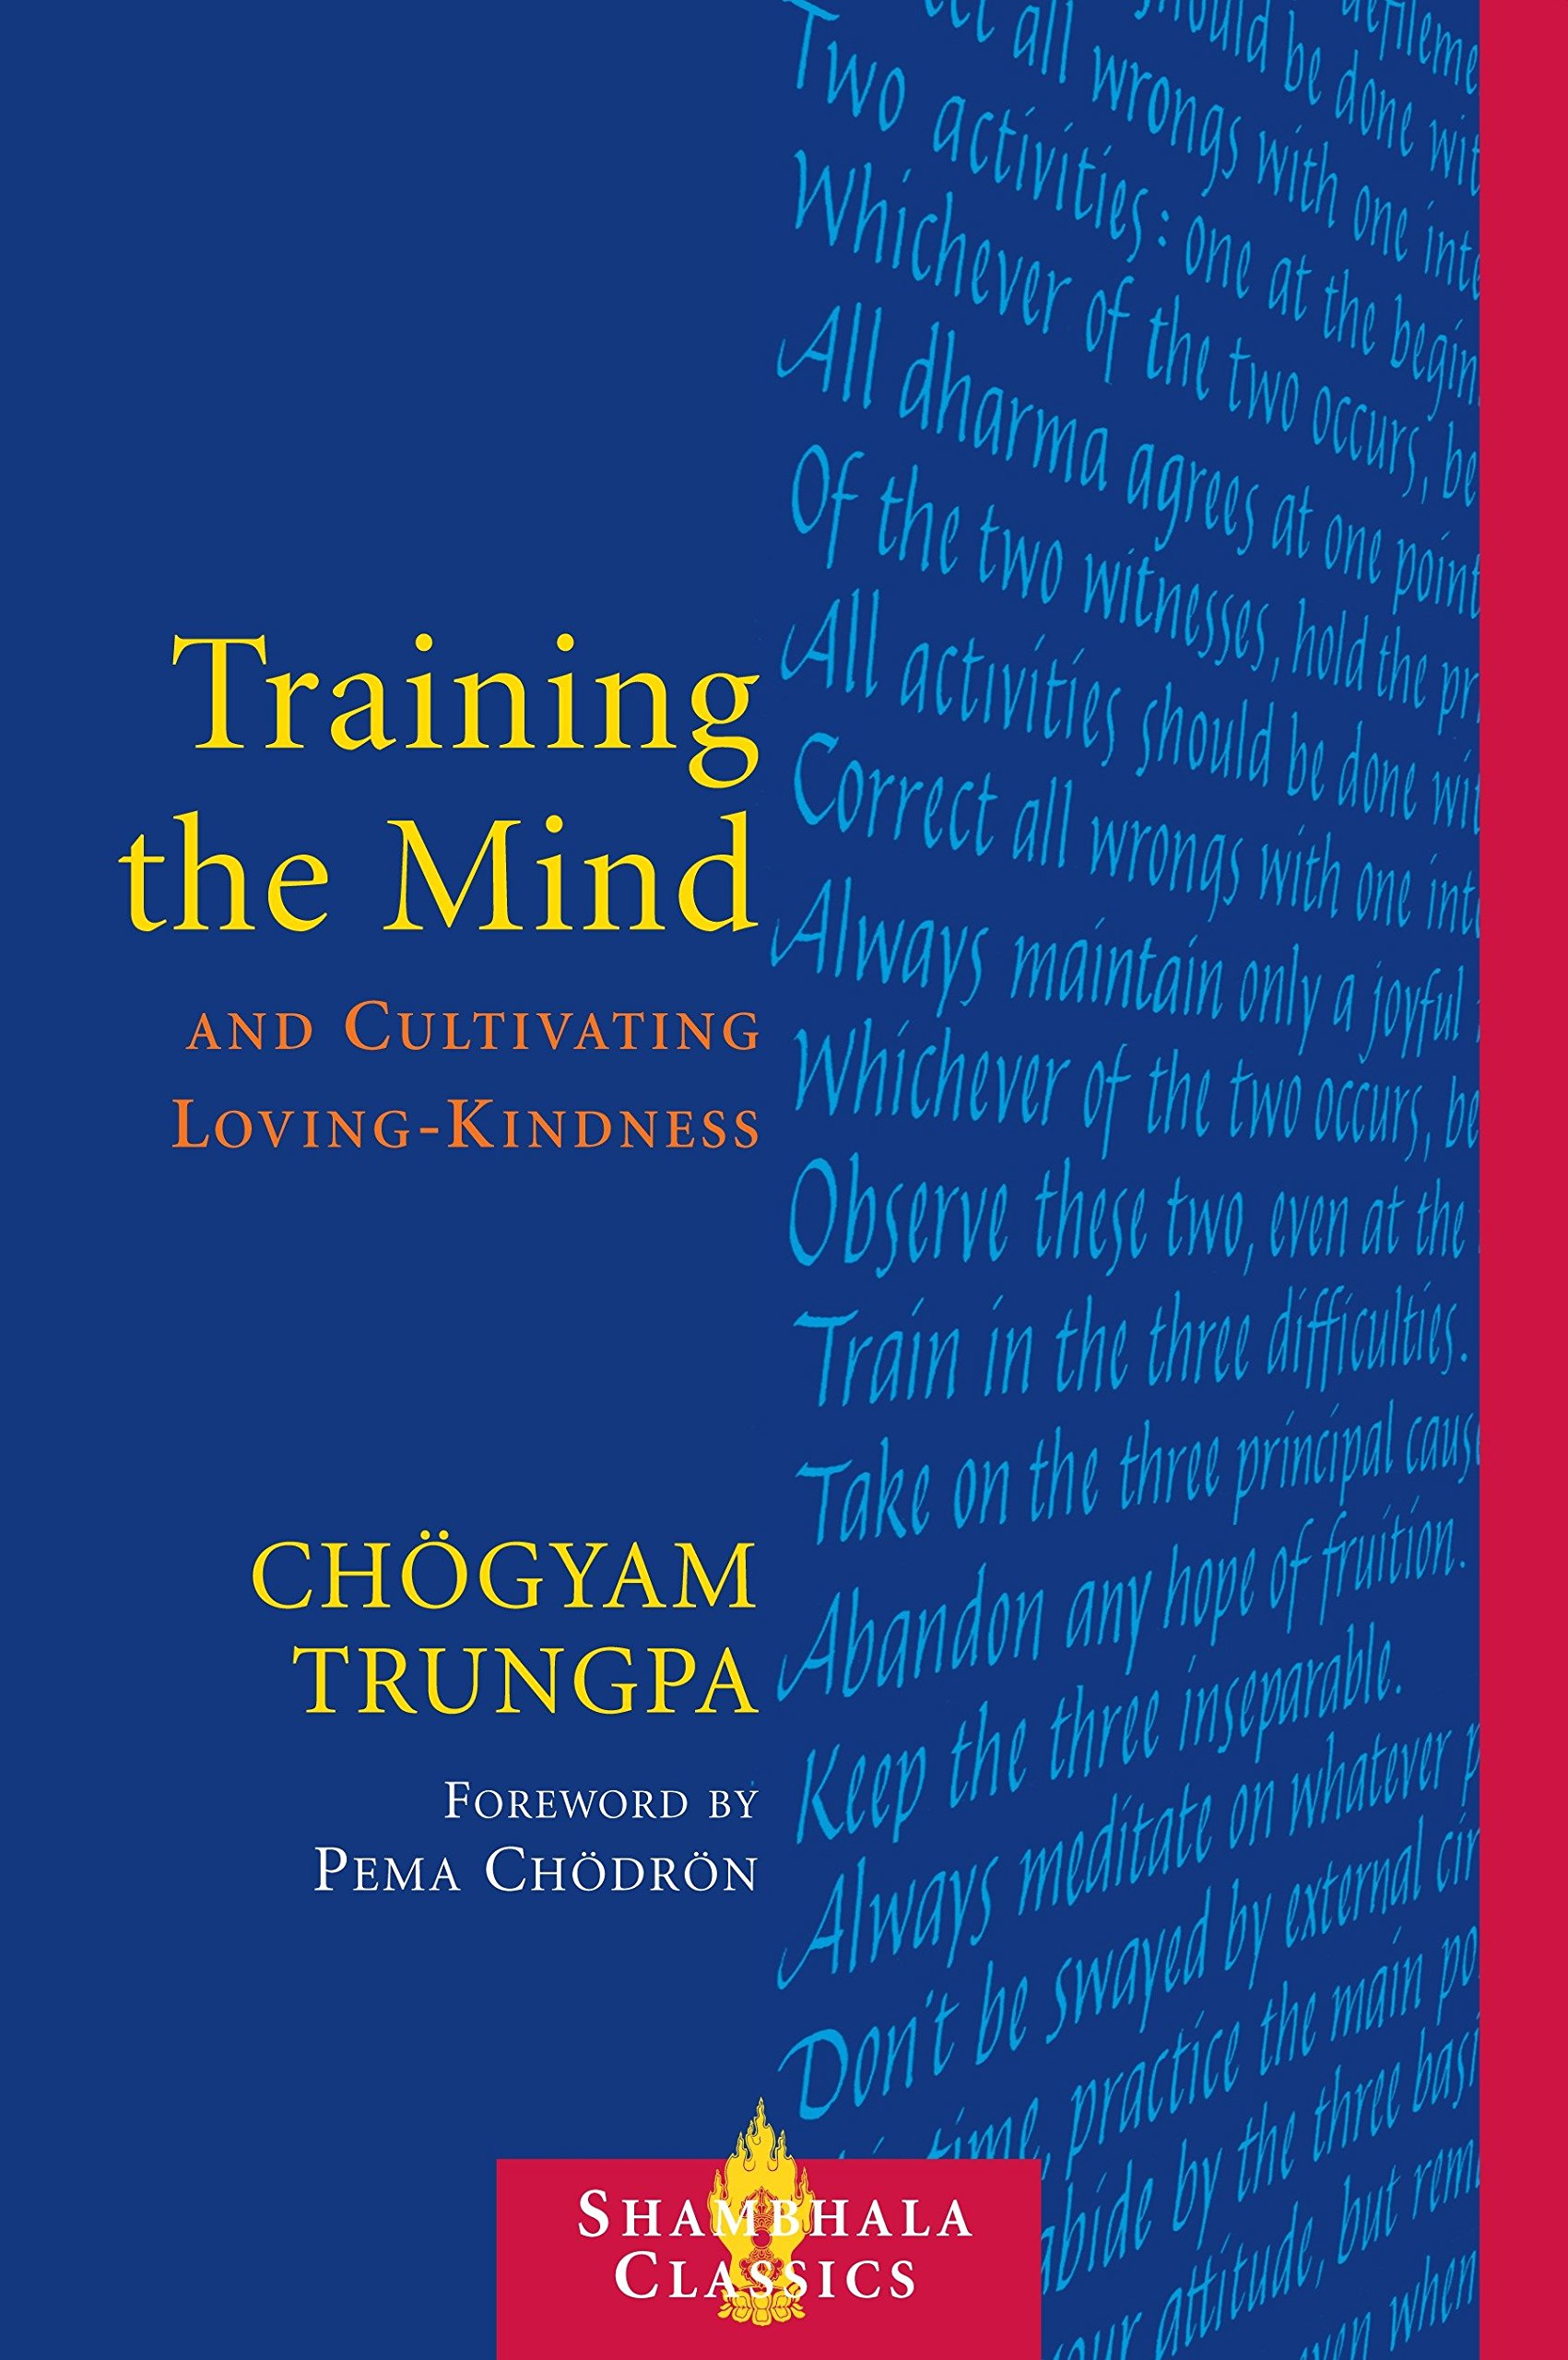 Trungpa Training the Mind cover art